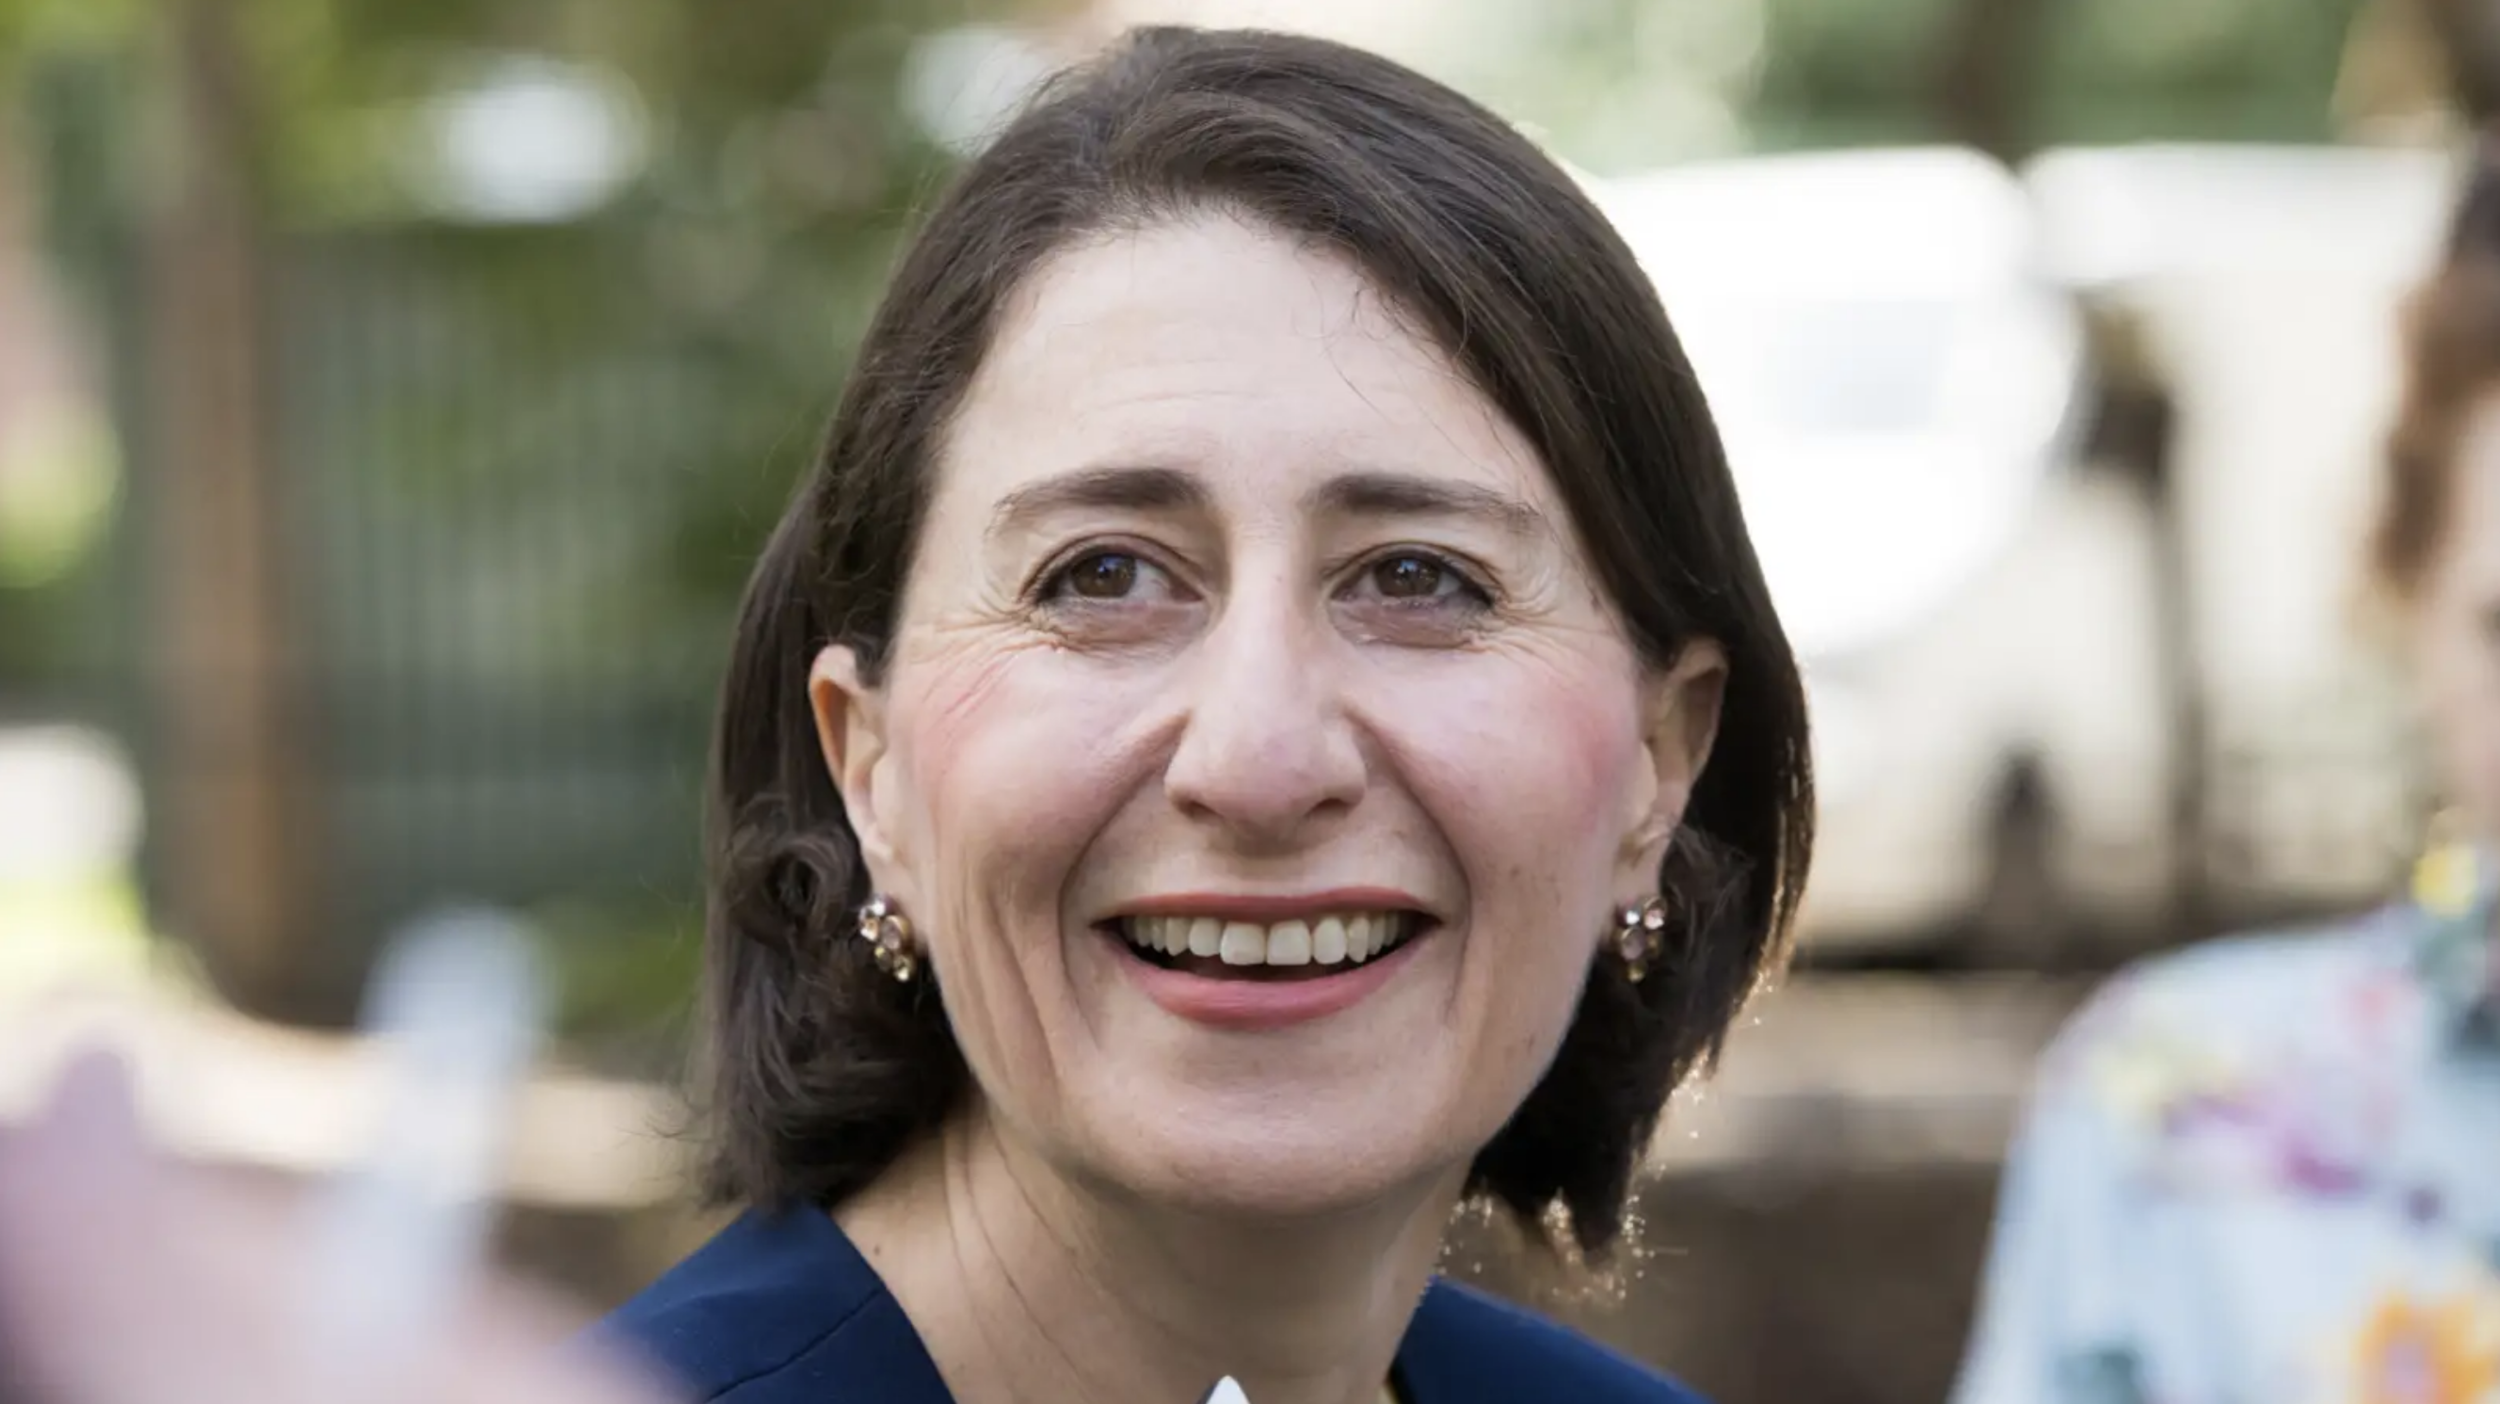 Premier Gladys Berejiklian at a press call on Sunday following her election victory. Credit:Edwina Pickles